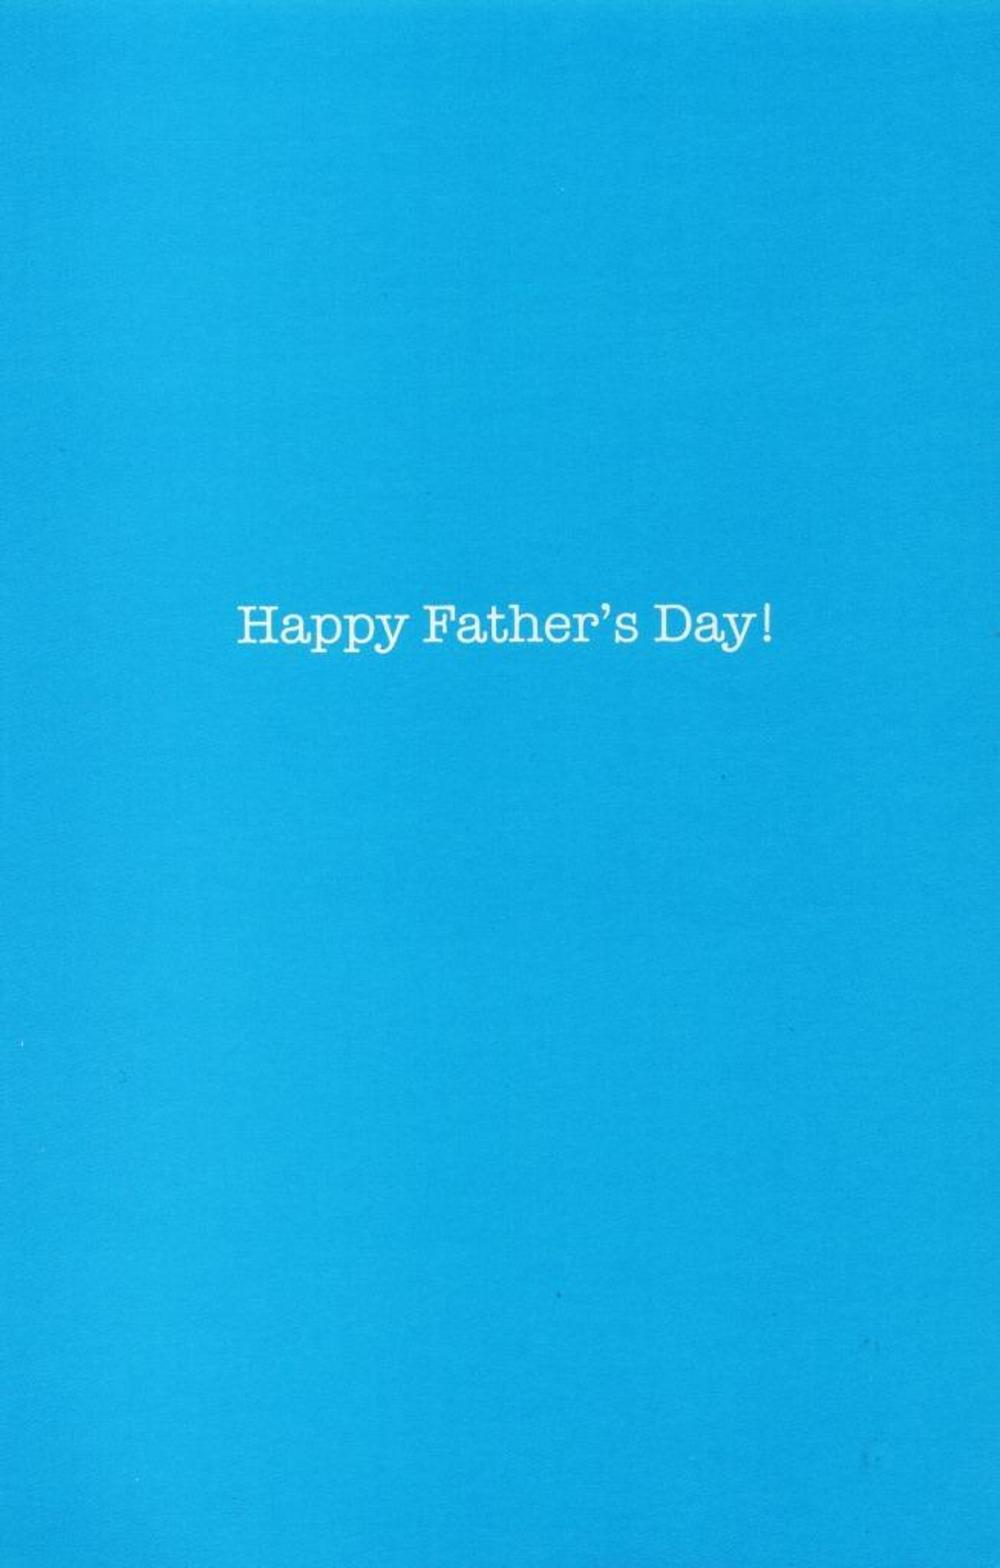 Funny Wishes Come True Happy Father's Day Card | Cards ...